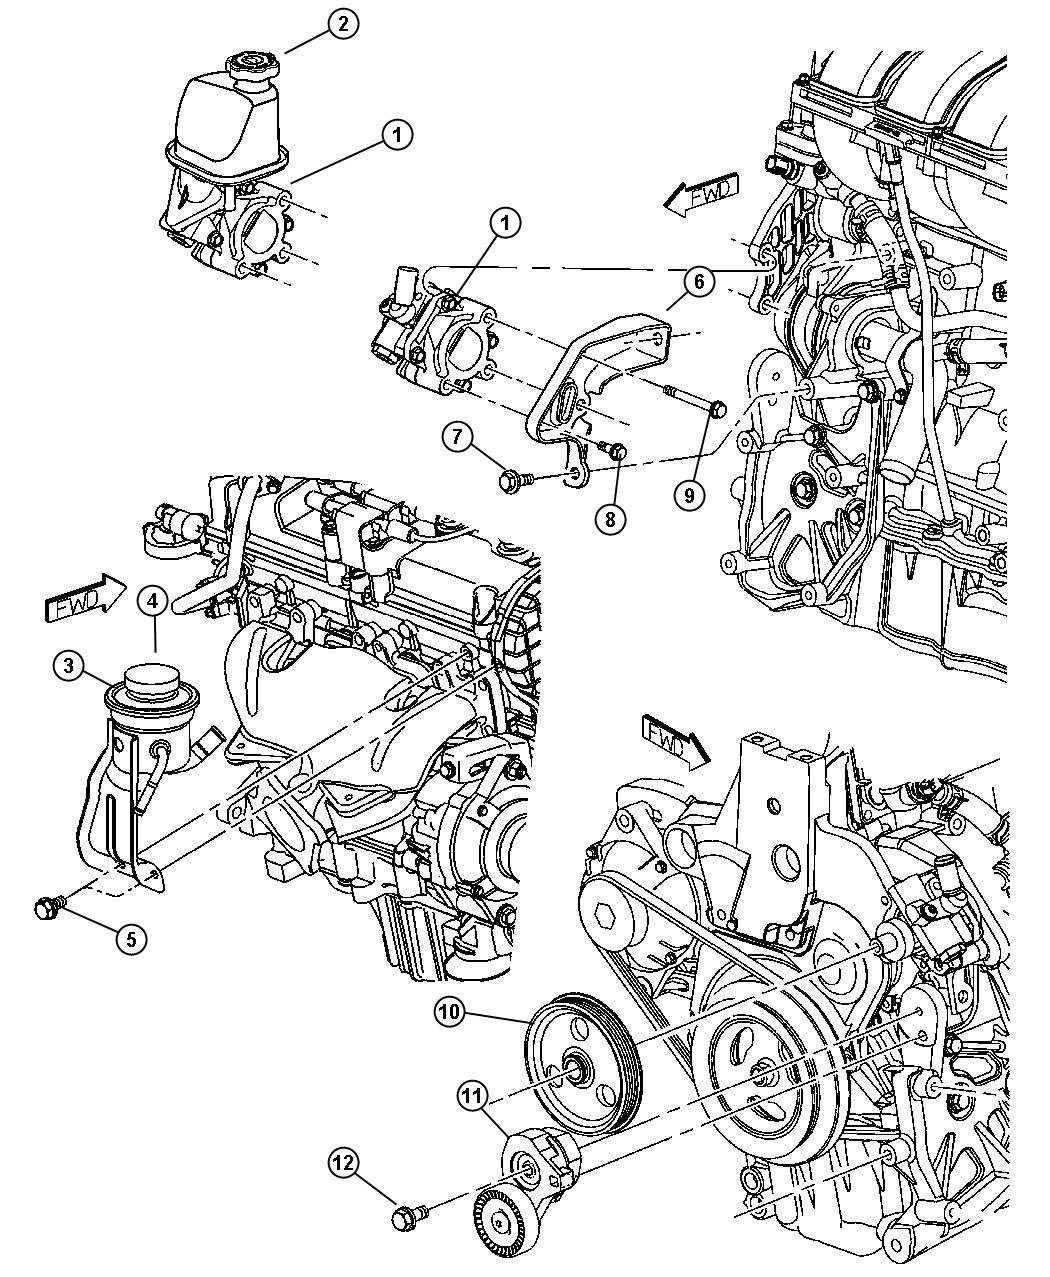 Pump Assembly And Mounting 2 4l Edv Edz Engine